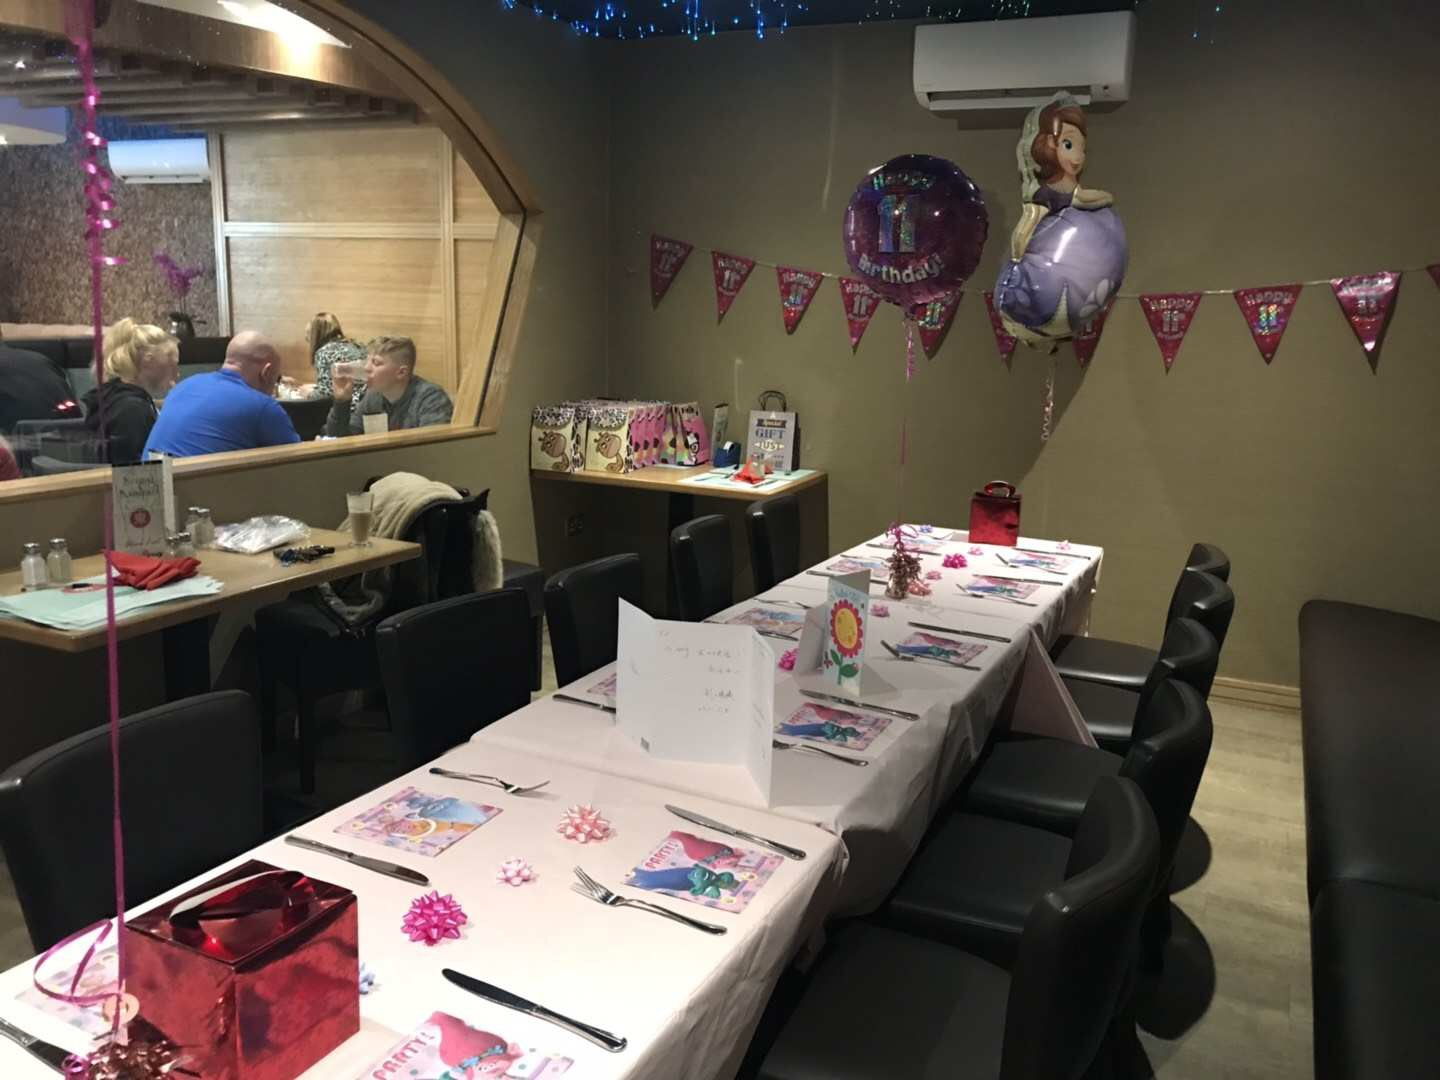 View of venue hire Edinburgh with tables decorated for a birthday party.